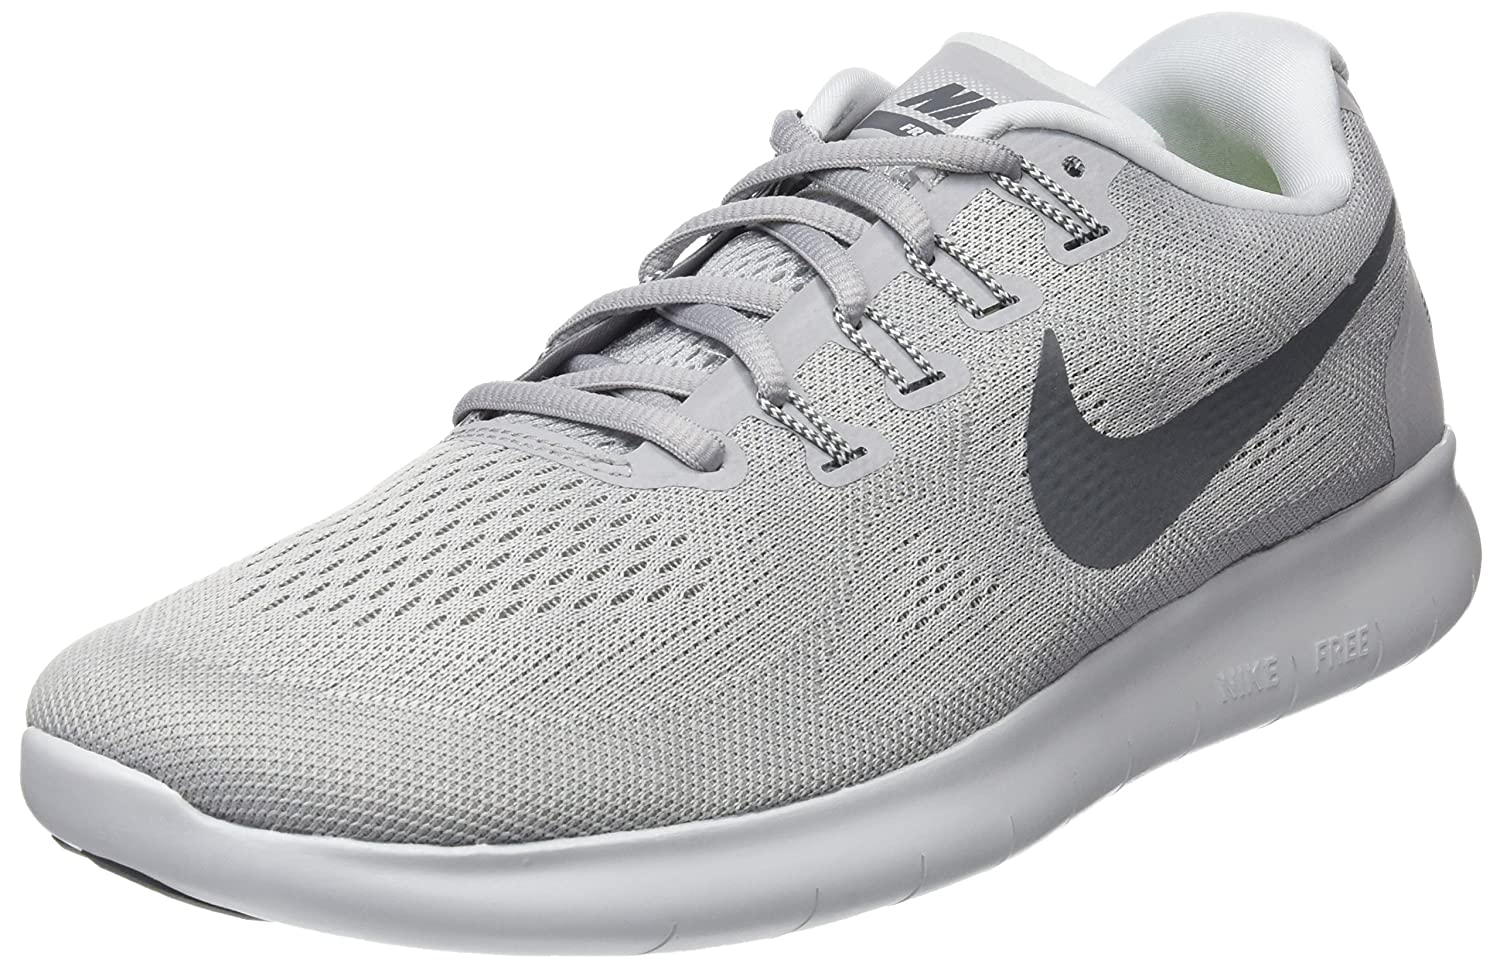 NIKE Men's Free RN Running Shoe B06XY3FKMS 8.5 D(M) US|Grey/Dark Grey-pure Platinum